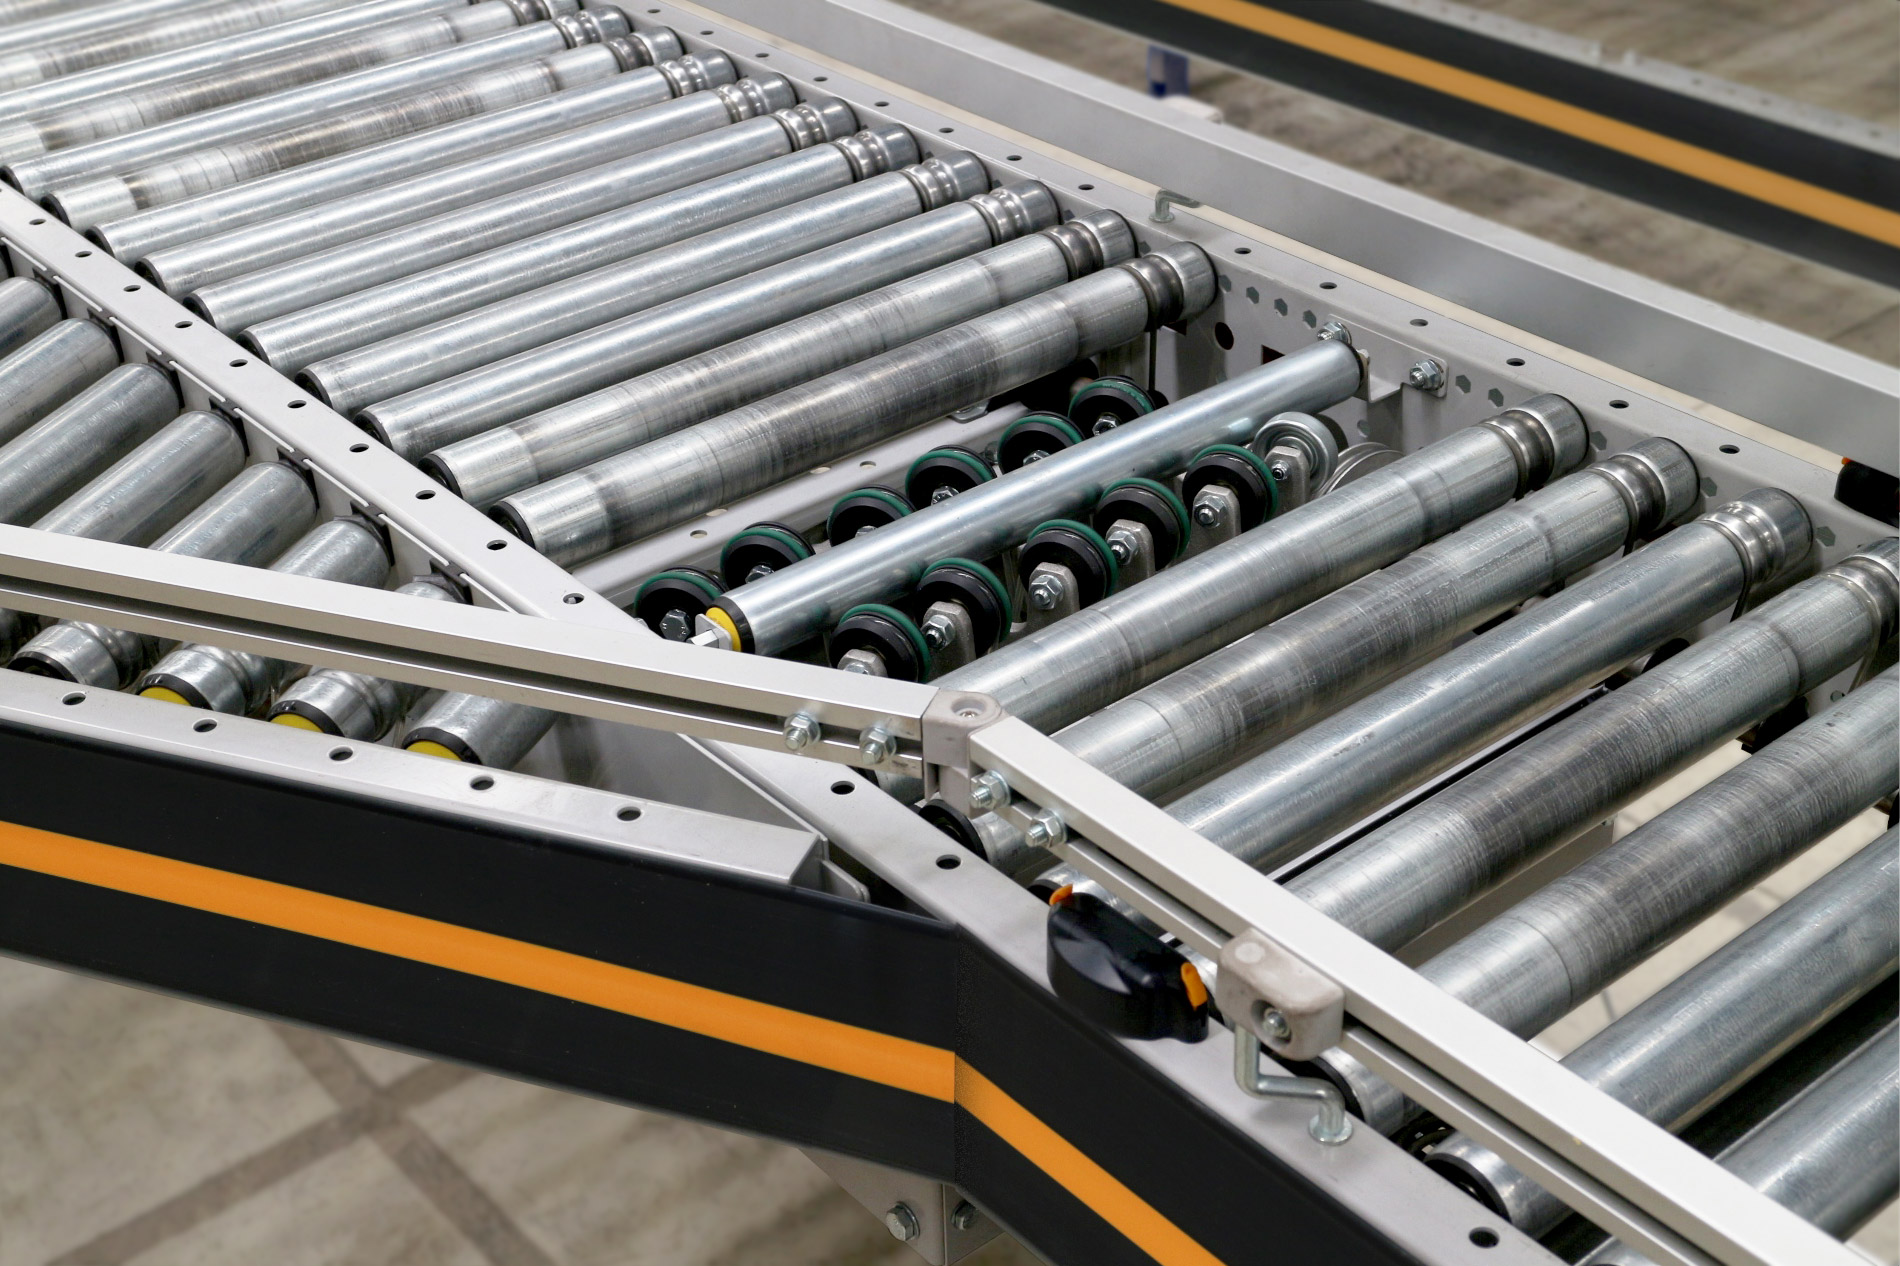 Dematic completes MCS range with new line-shaft conveyor